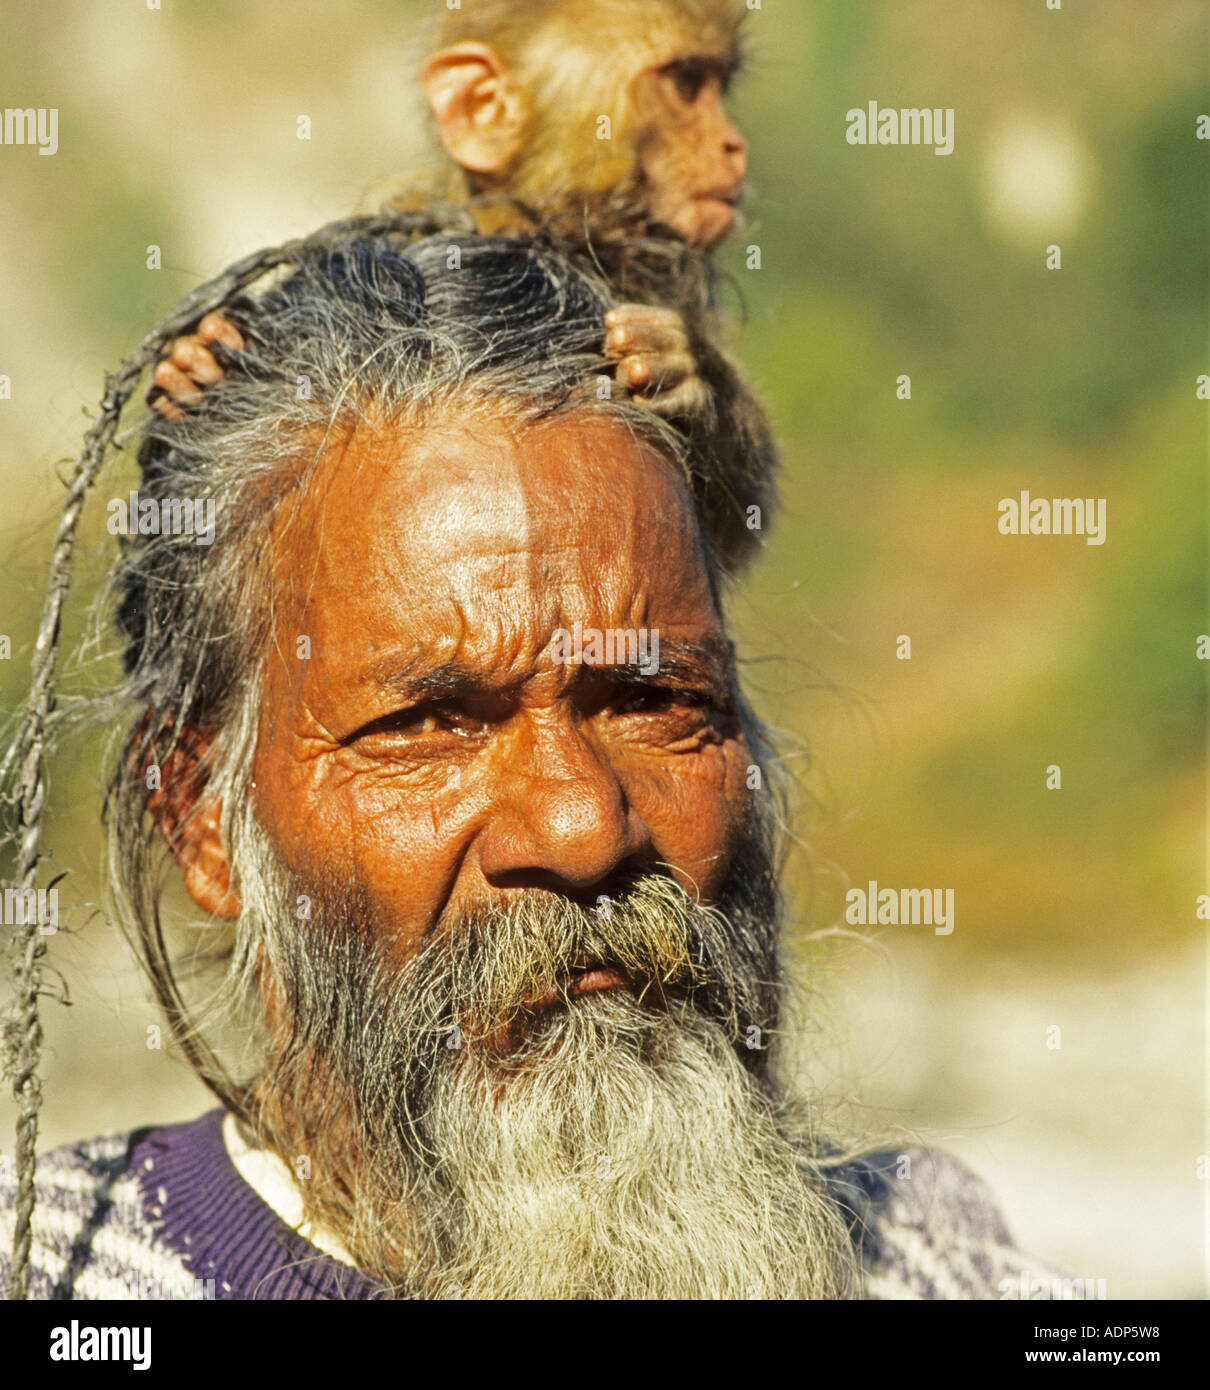 sadus with monkey the sacred mens india - Stock Image